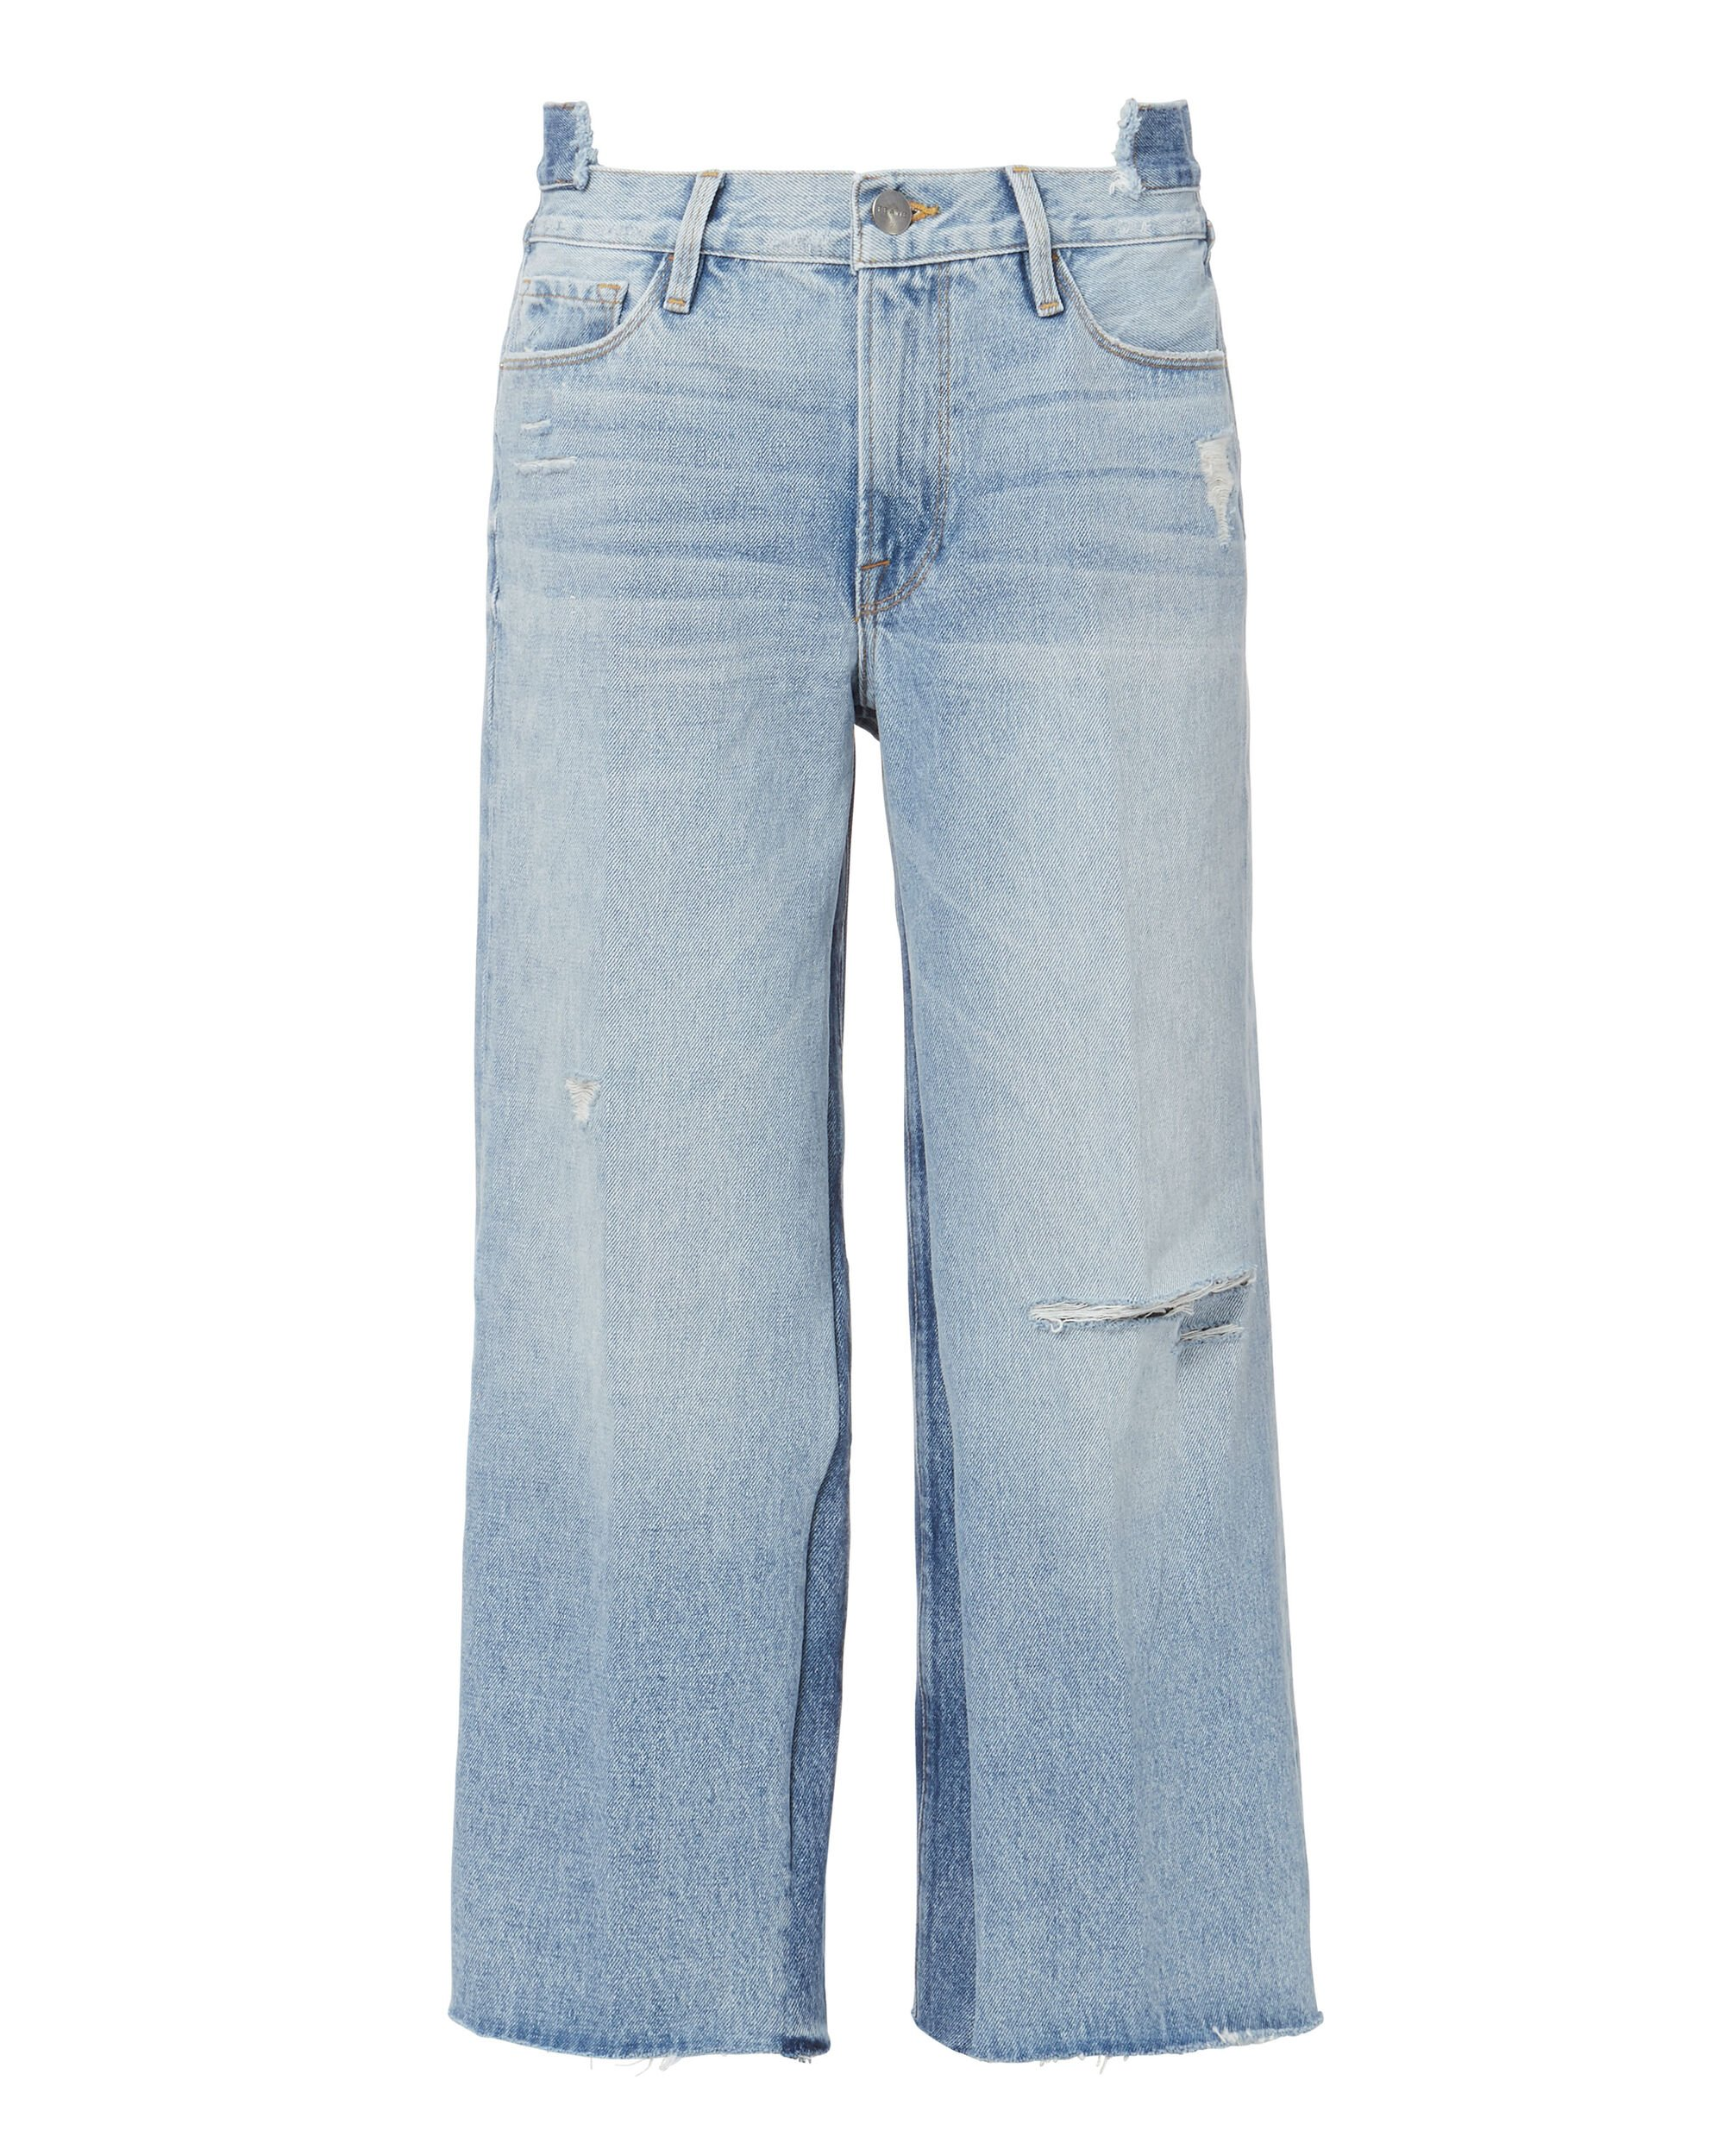 Le Reconstructed Cropped Wide Leg Jeans, DENIM-LT 3, hi-res